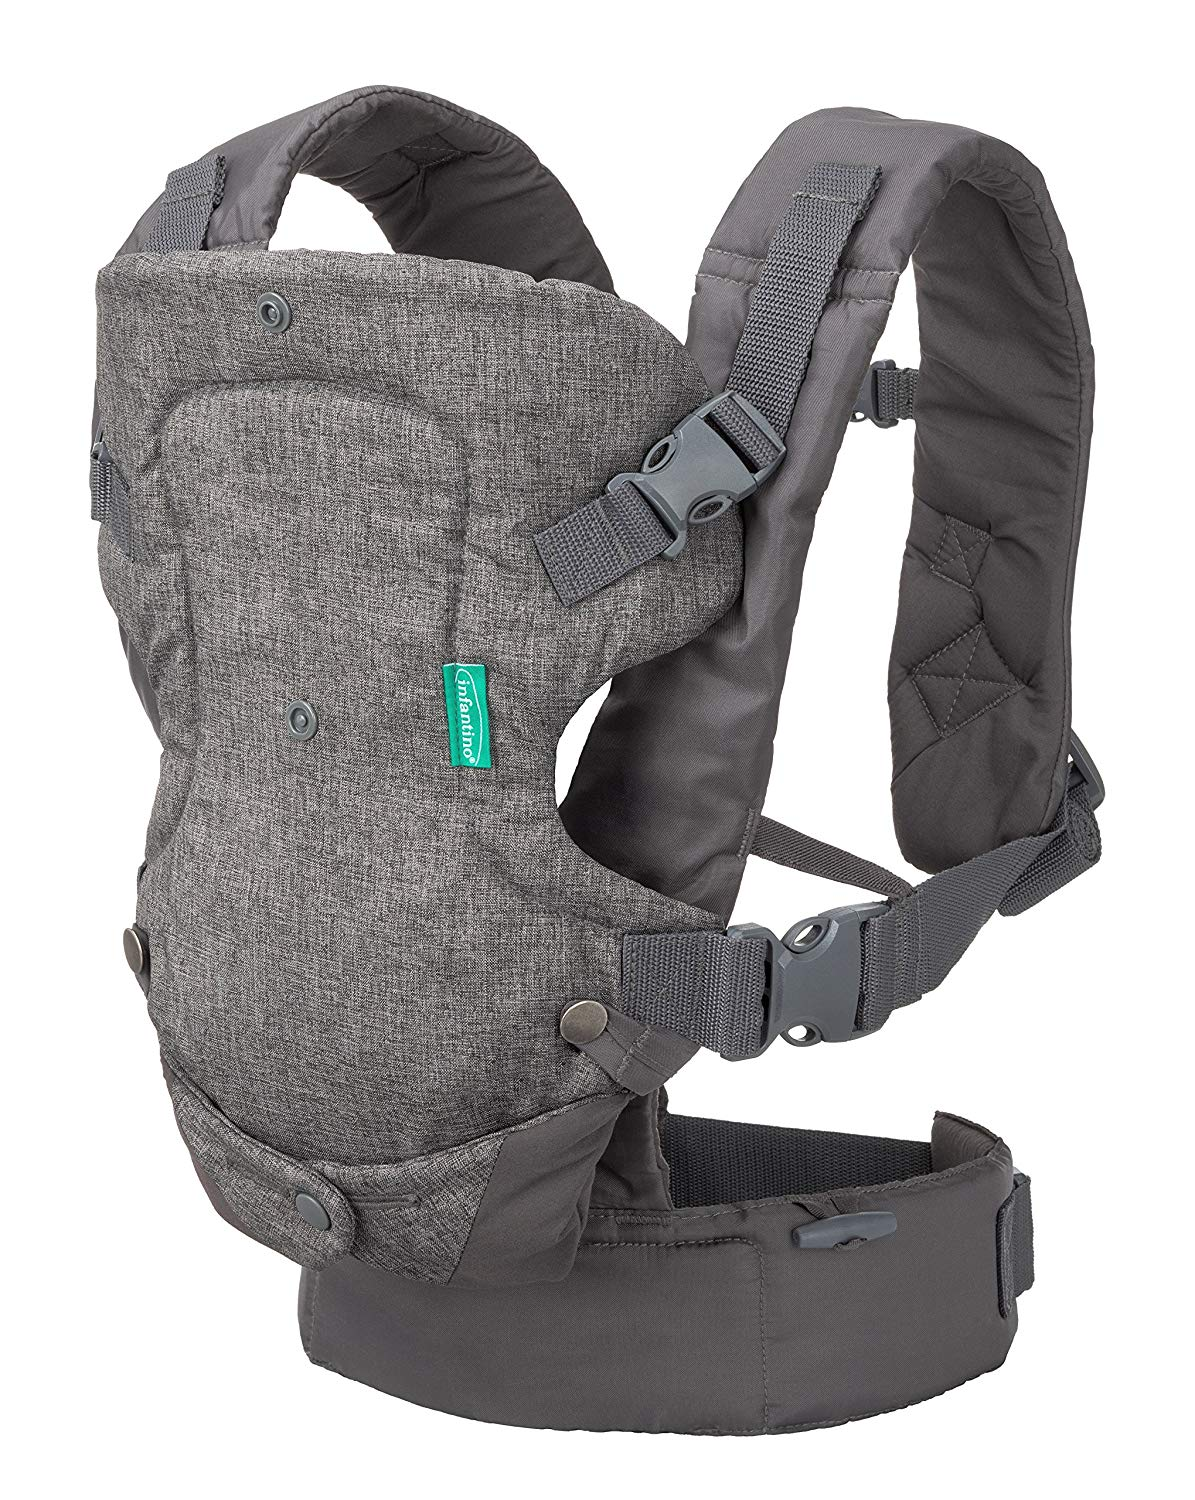 Infantino Flip 4-in-1 Convertible Carrier Baby Sling